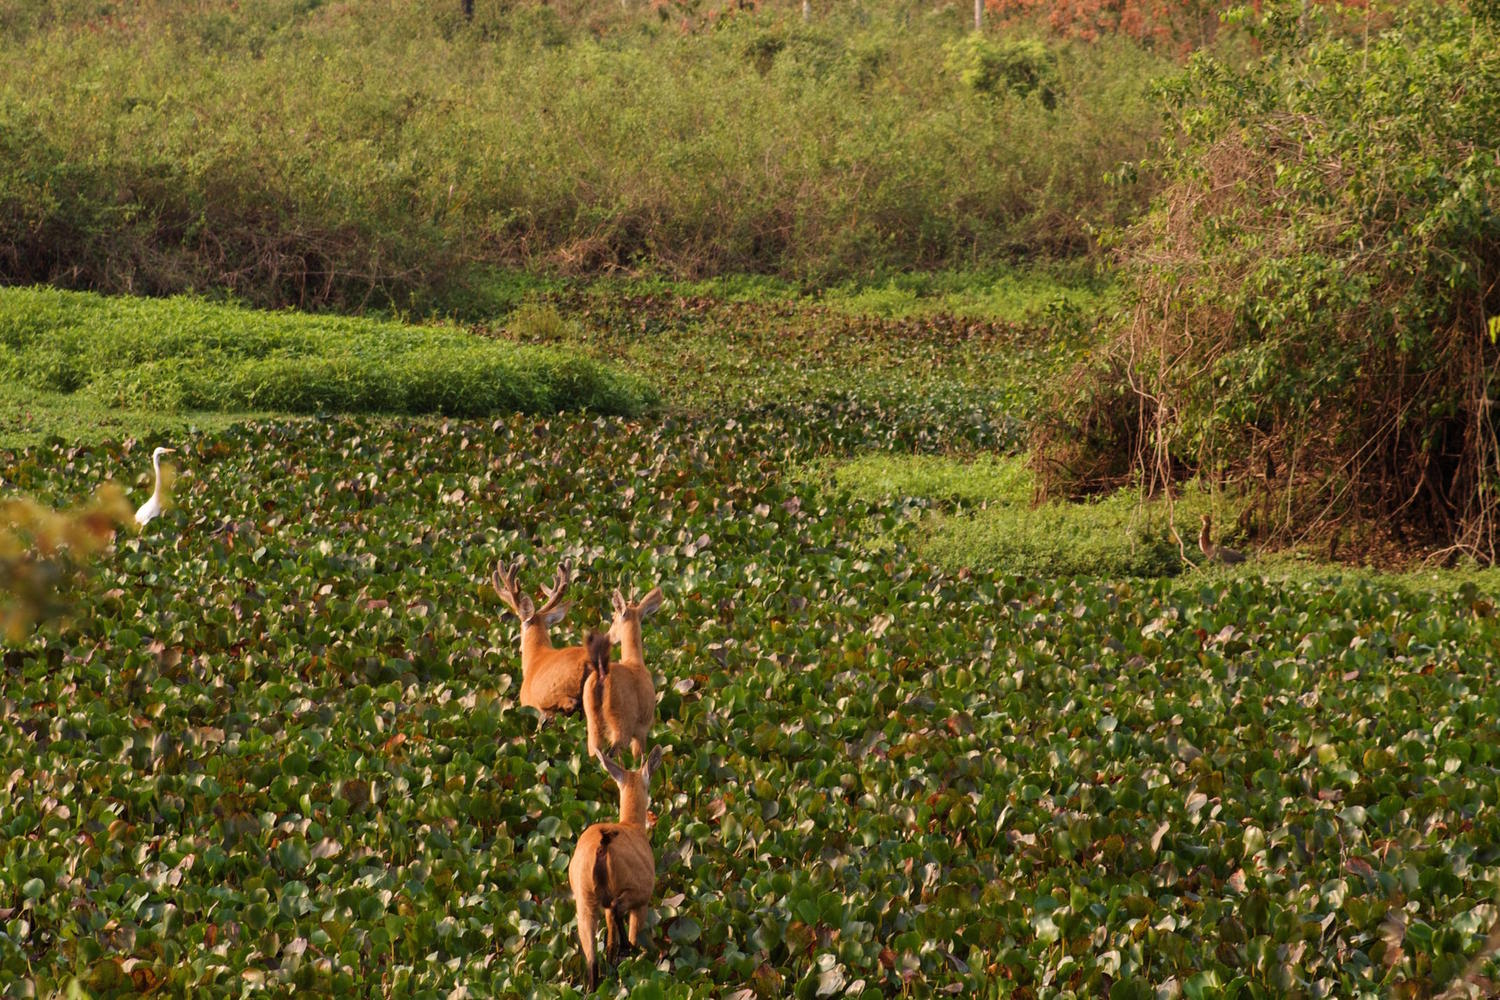 Deer crossing the marshland in the Pantanal